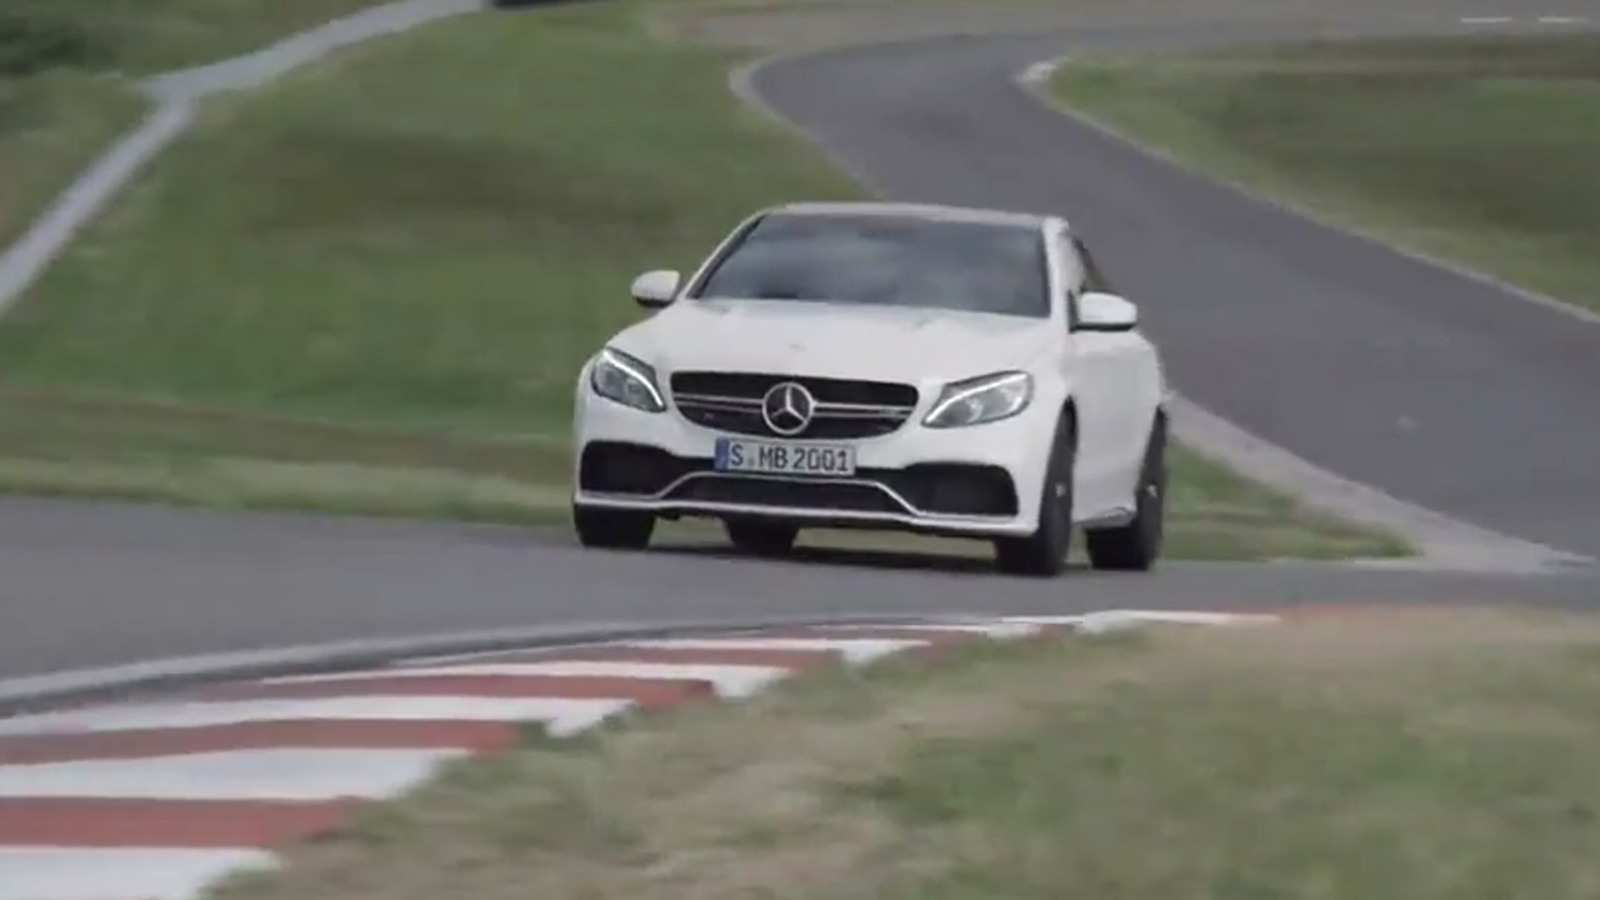 2015 Mercedes-AMG C63 at the track